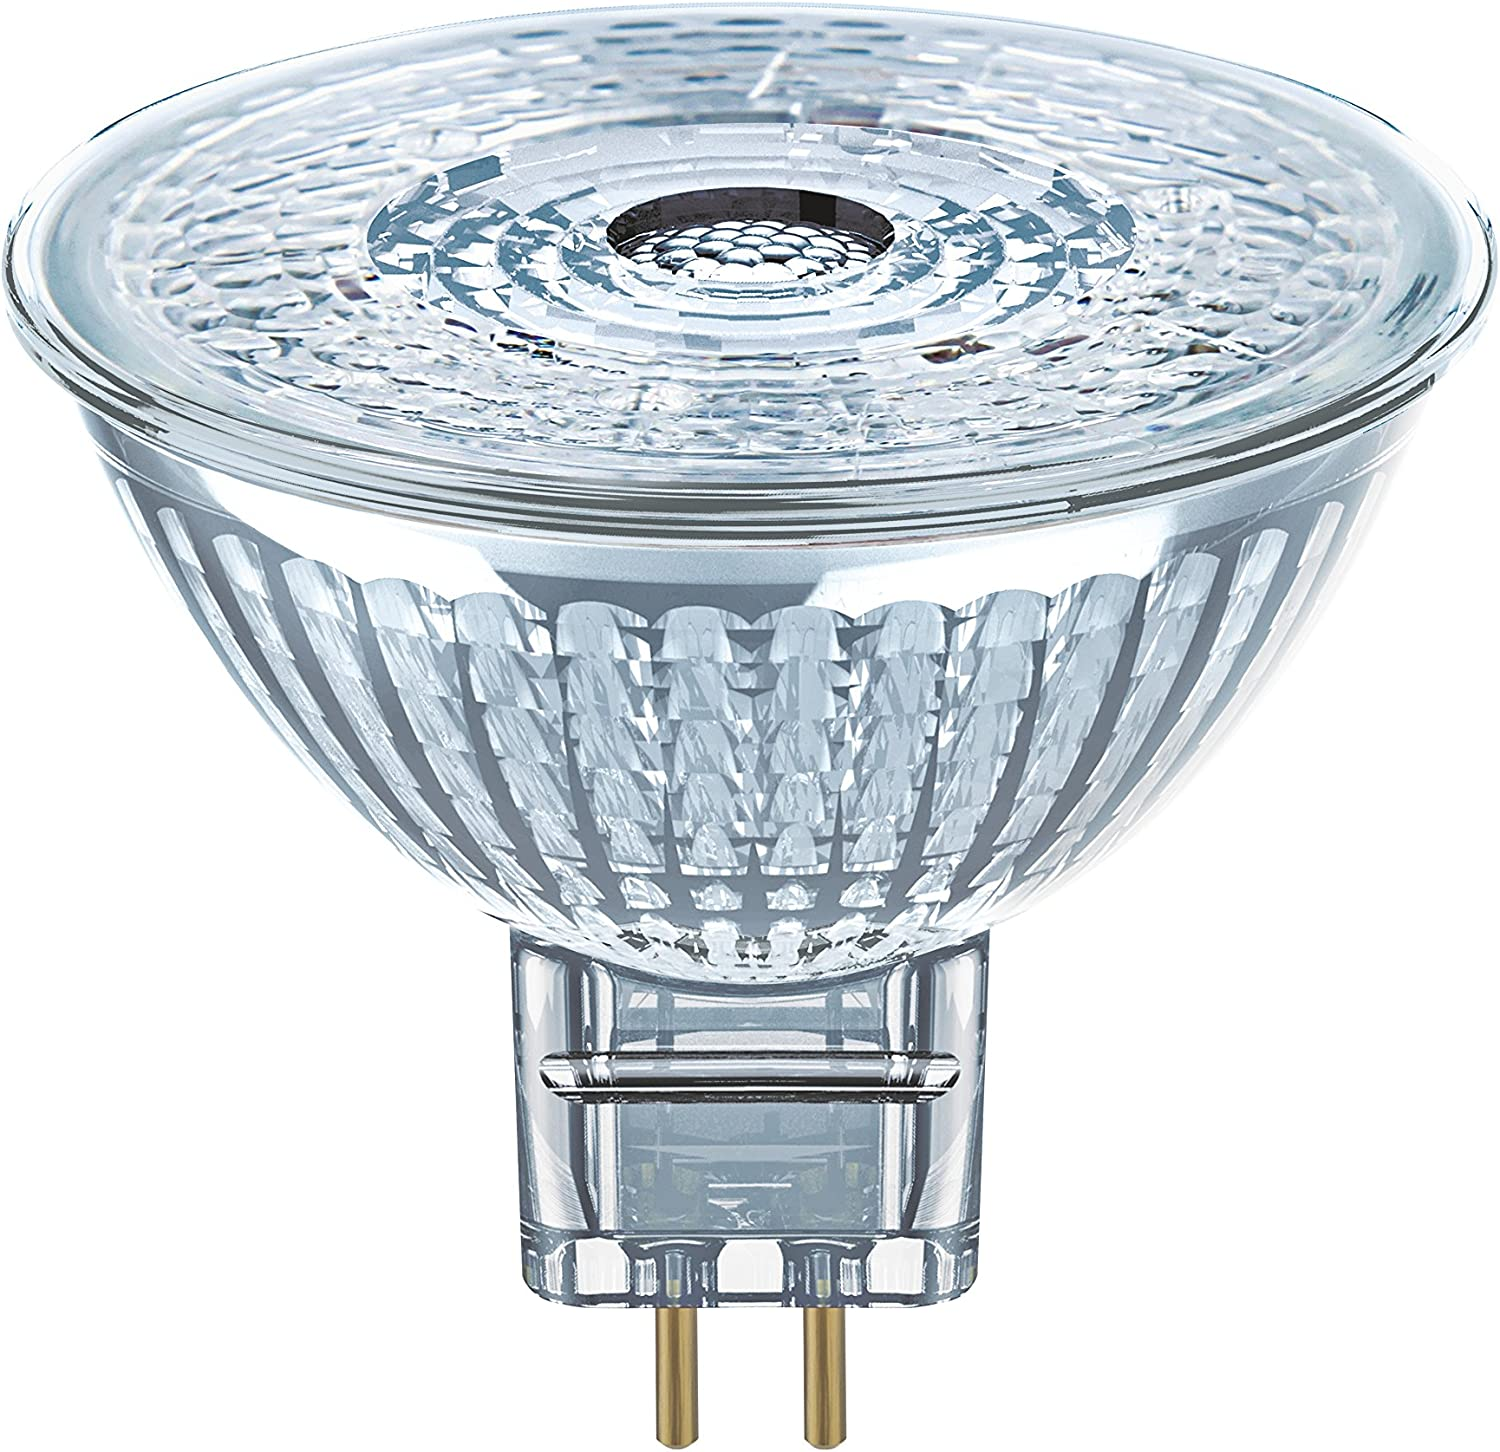 OSRAM LED STAR MR16 12 V LED reflector lamp, MR16, for low voltage operation, with pin base: GU5.3, 2.90 W, 12 V, 20 W replacement, Beam angle: 36